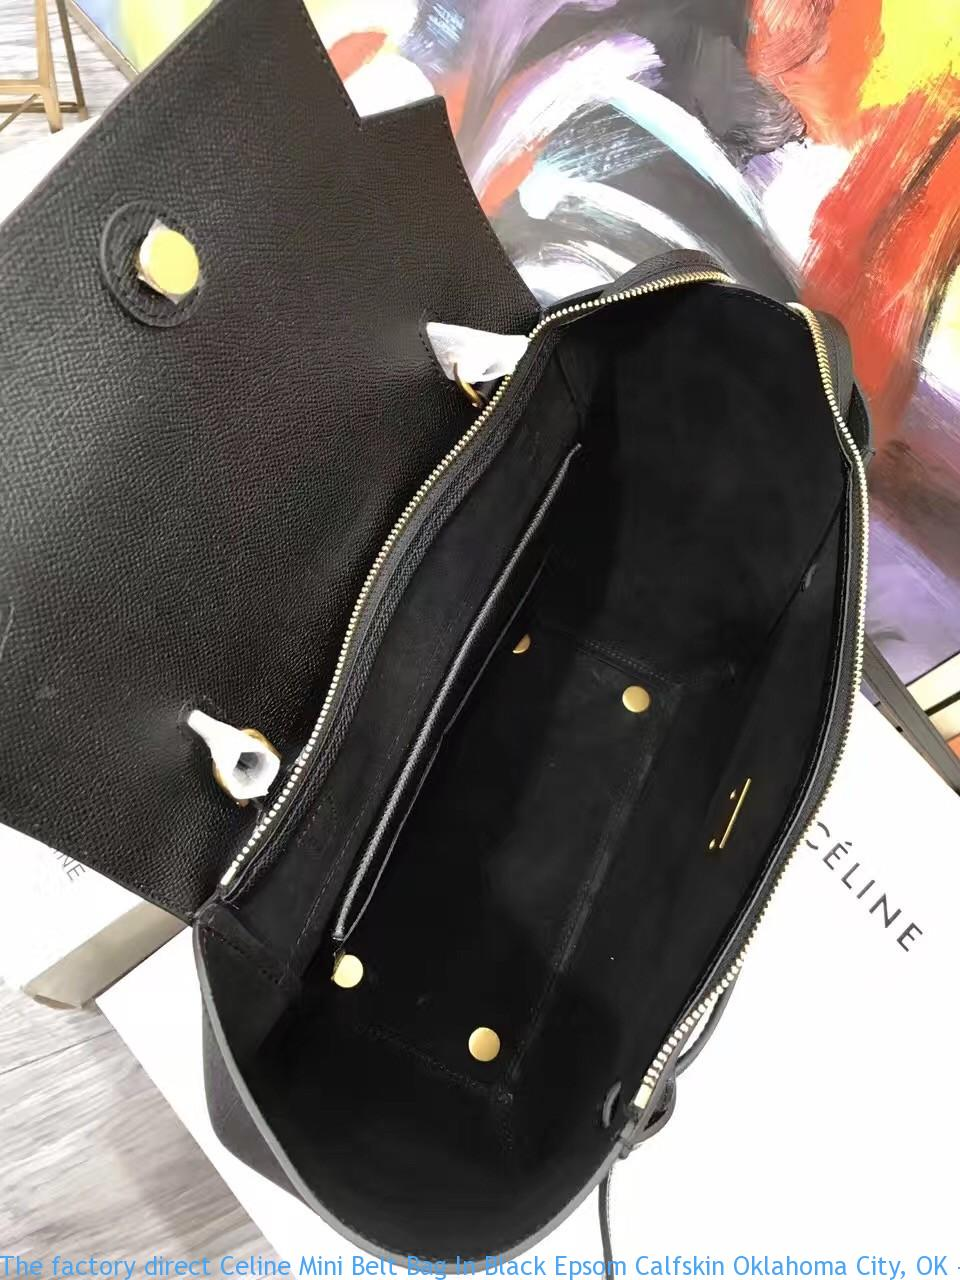 The factory direct Celine Mini Belt Bag In Black Epsom Calfskin ... d93fc2ee65ac6